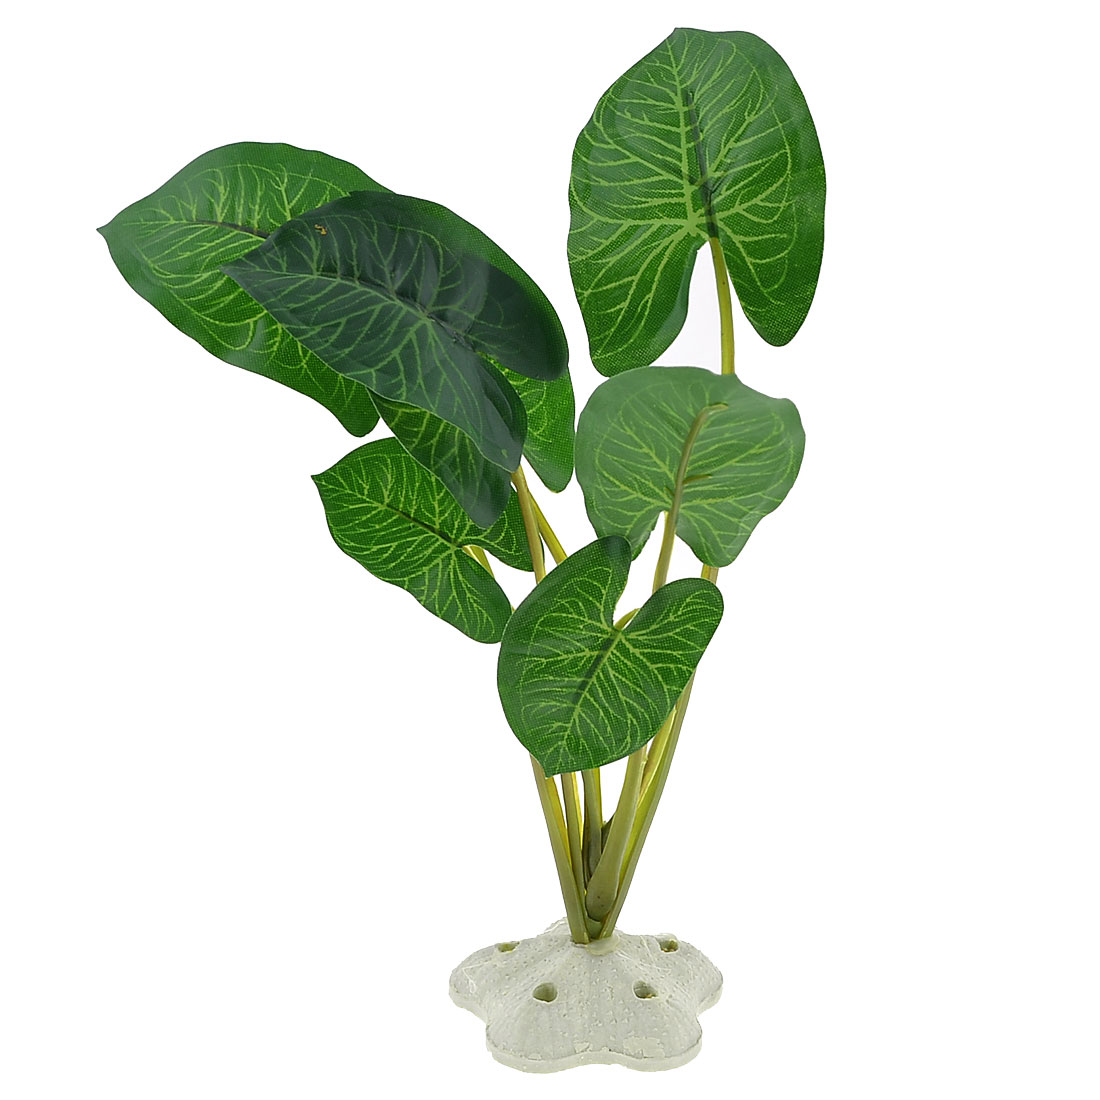 "Fish Tank Aquarium Decorative Emulational Plastic Green Leaf Plant 7.9"" Height"